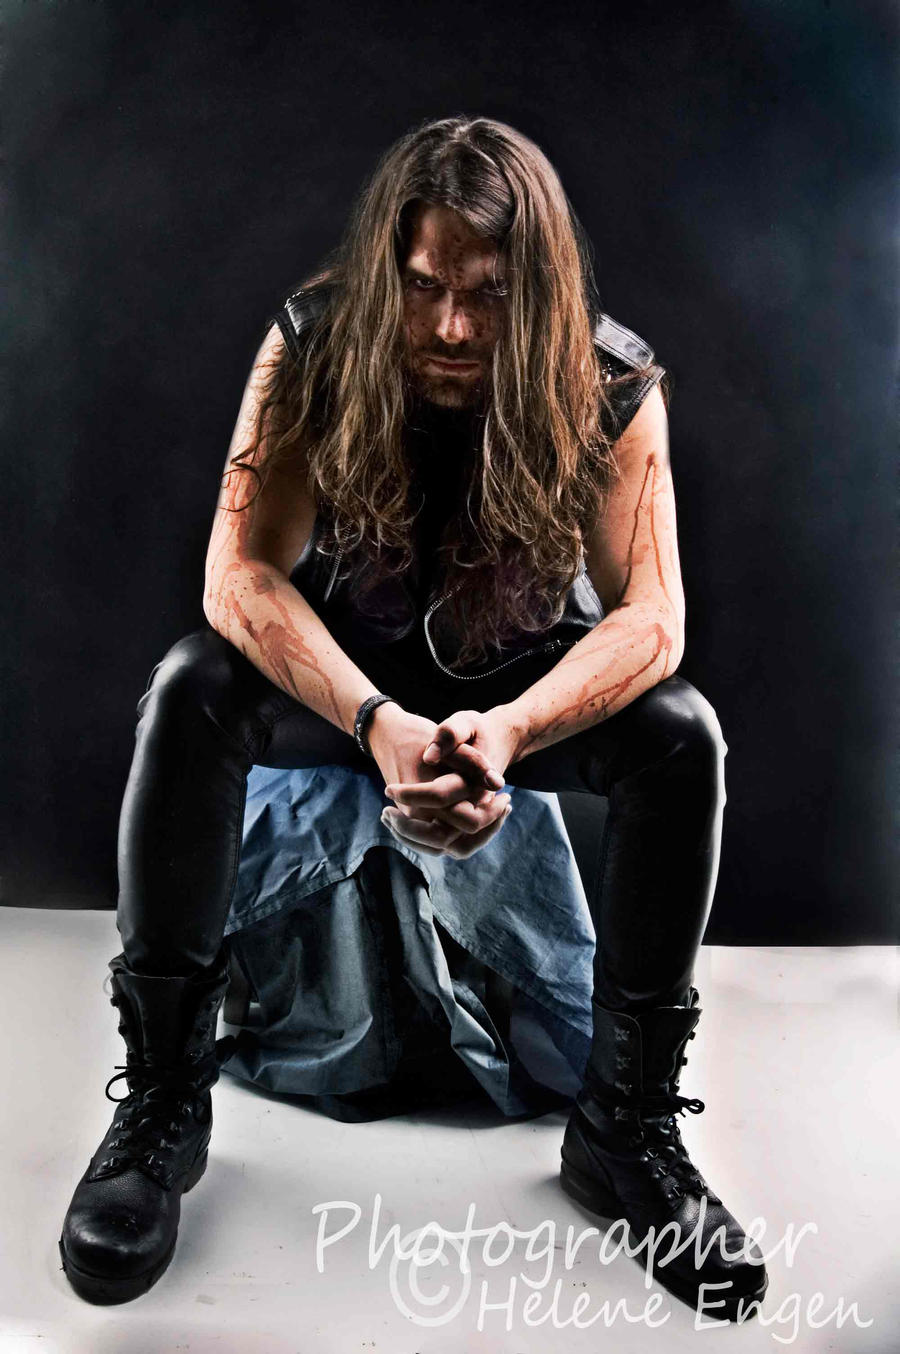 dating a heavy metal guy The latest tweets from heavy metal dating (@heavymetaldates) come and join a dating site for like-minded people into heavy metal music - where rockers unite.